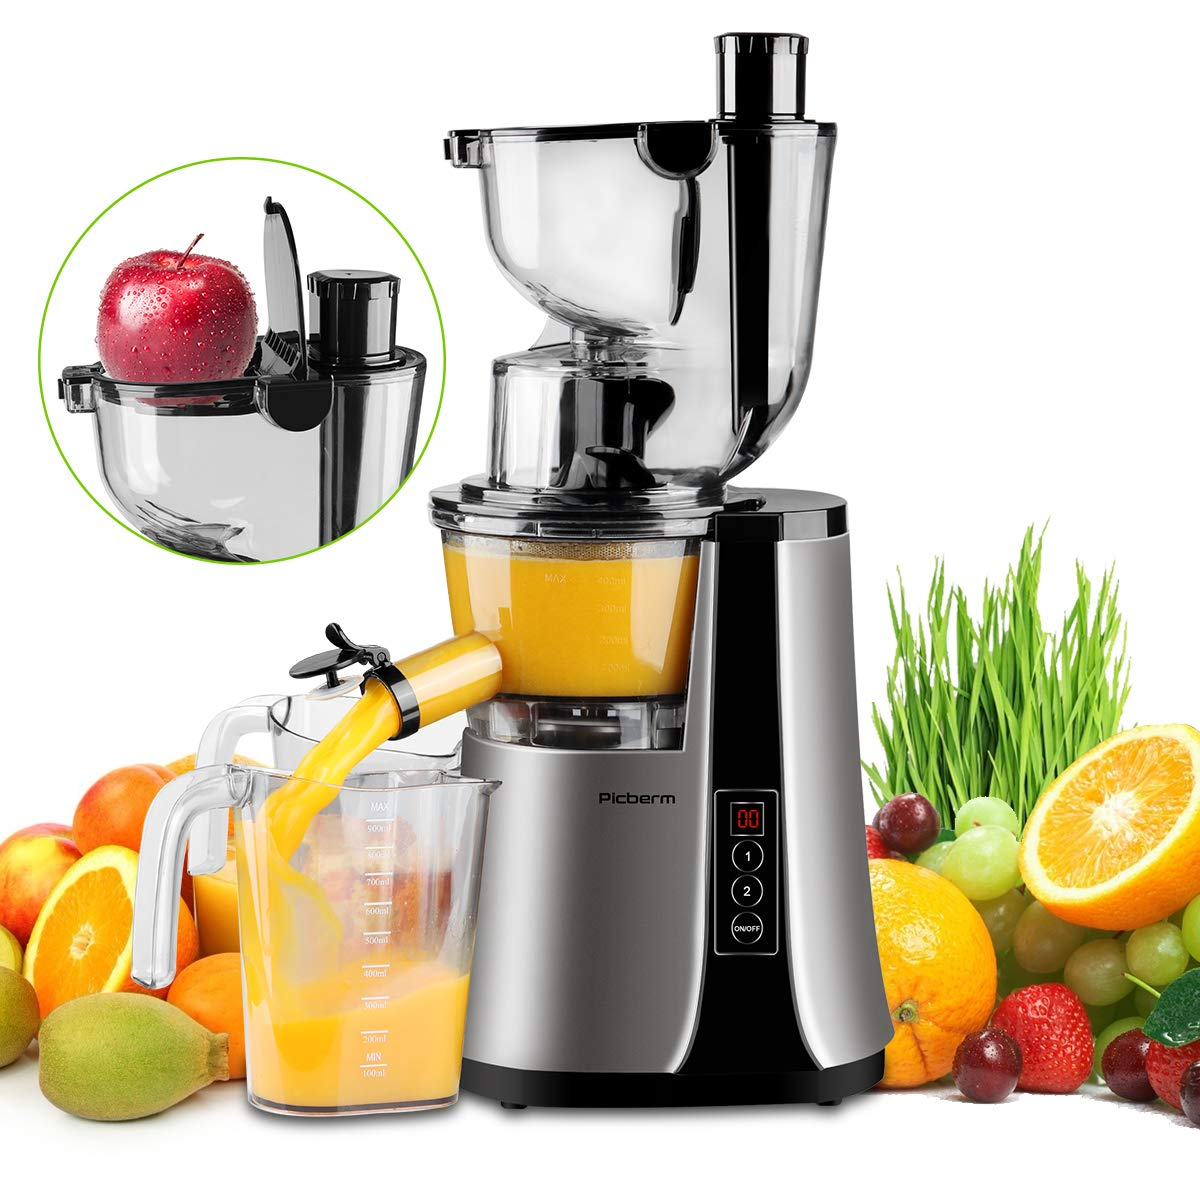 Wide Chute Slow Masticating Juicer Picberm Cold Press Juicer Extractor with Two Speed Modes, Juicer Machine for Higher Nutrient Fruit and Vegetable Juice, Quiet Motor & BPA-FREE by picberm